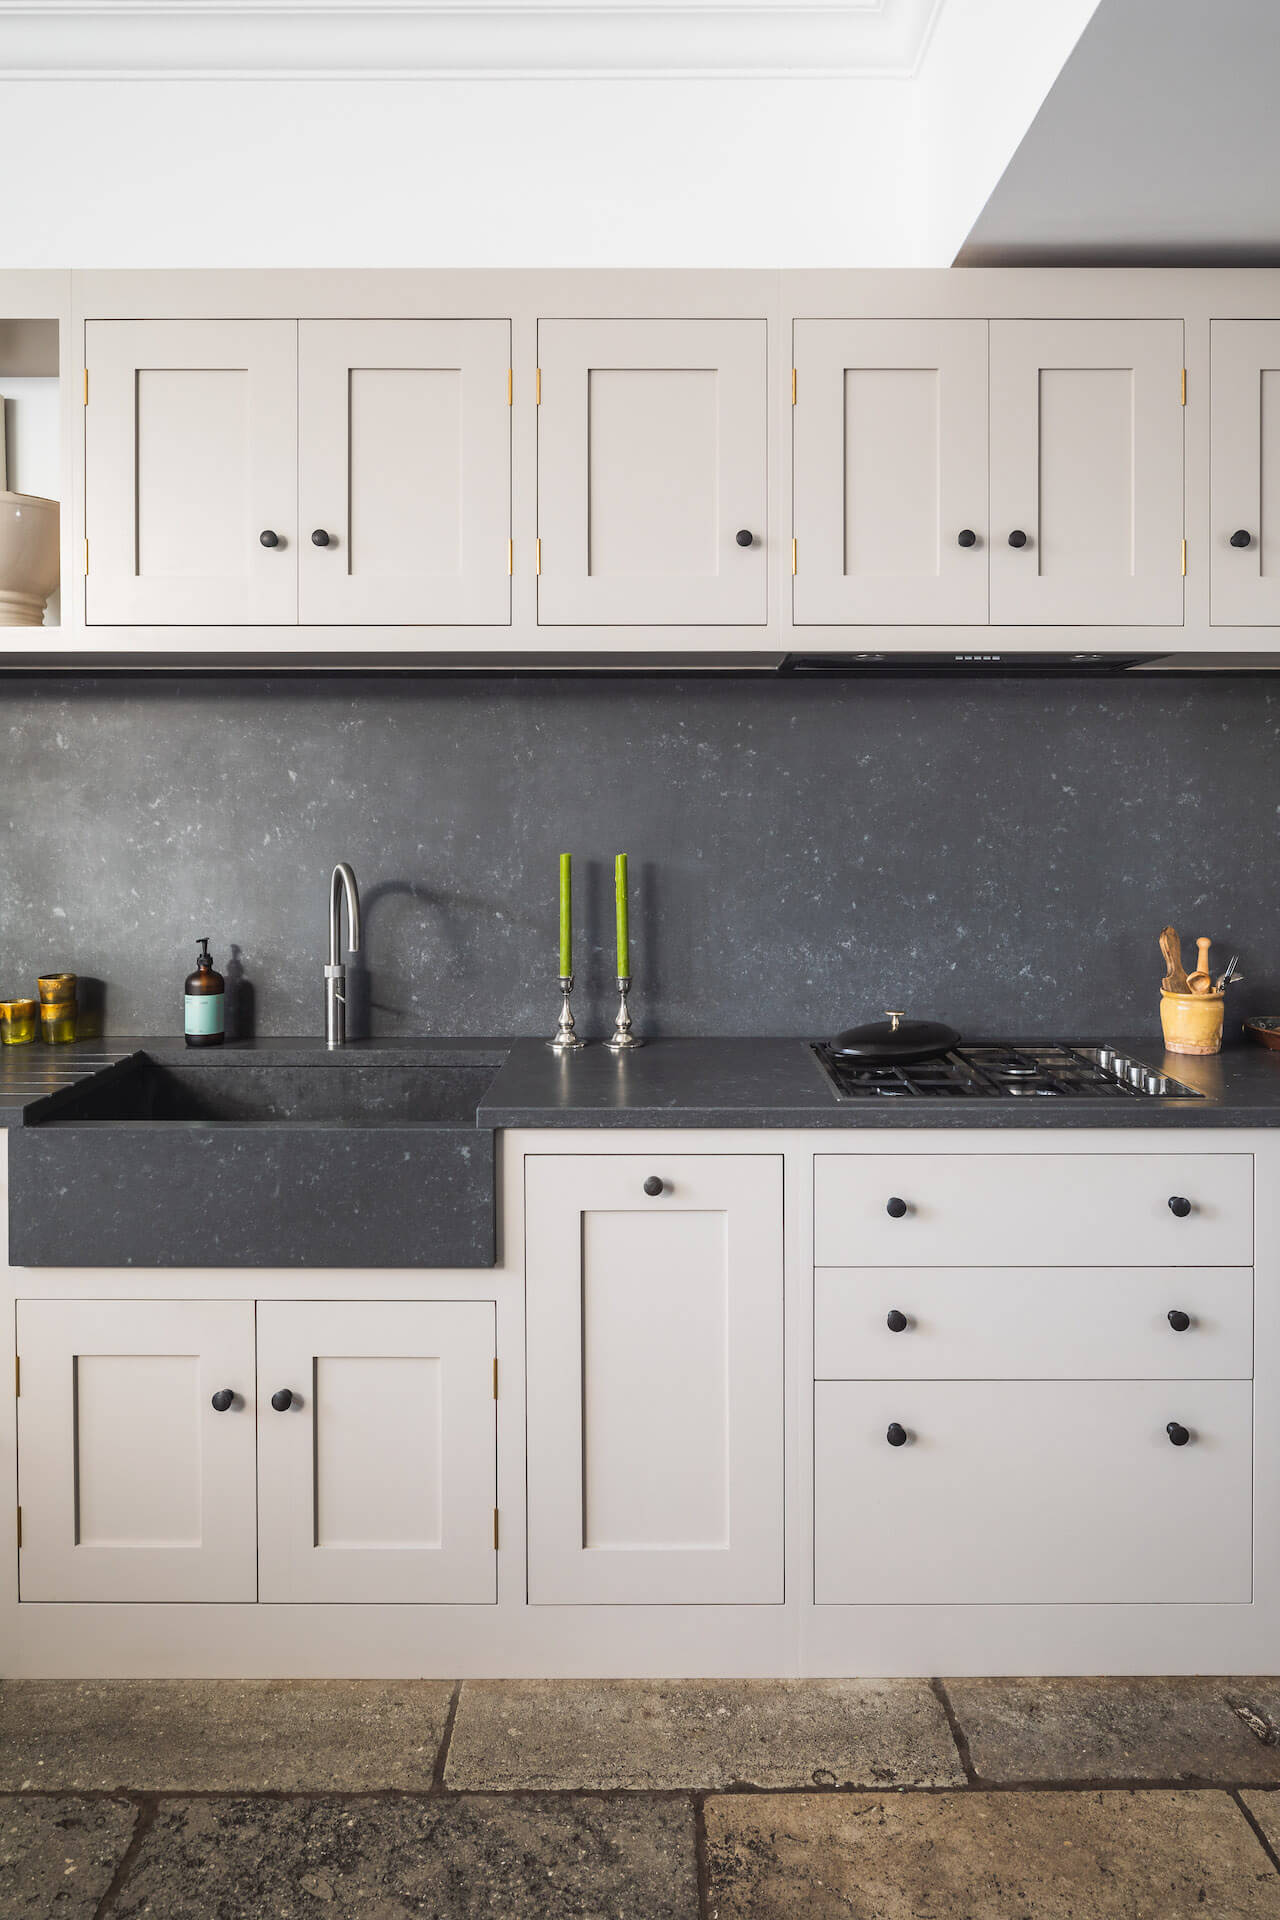 Grand Shaker Kitchen London - Elephants Breath by Farrow and Ball with Concretto Scuro worktops and sink